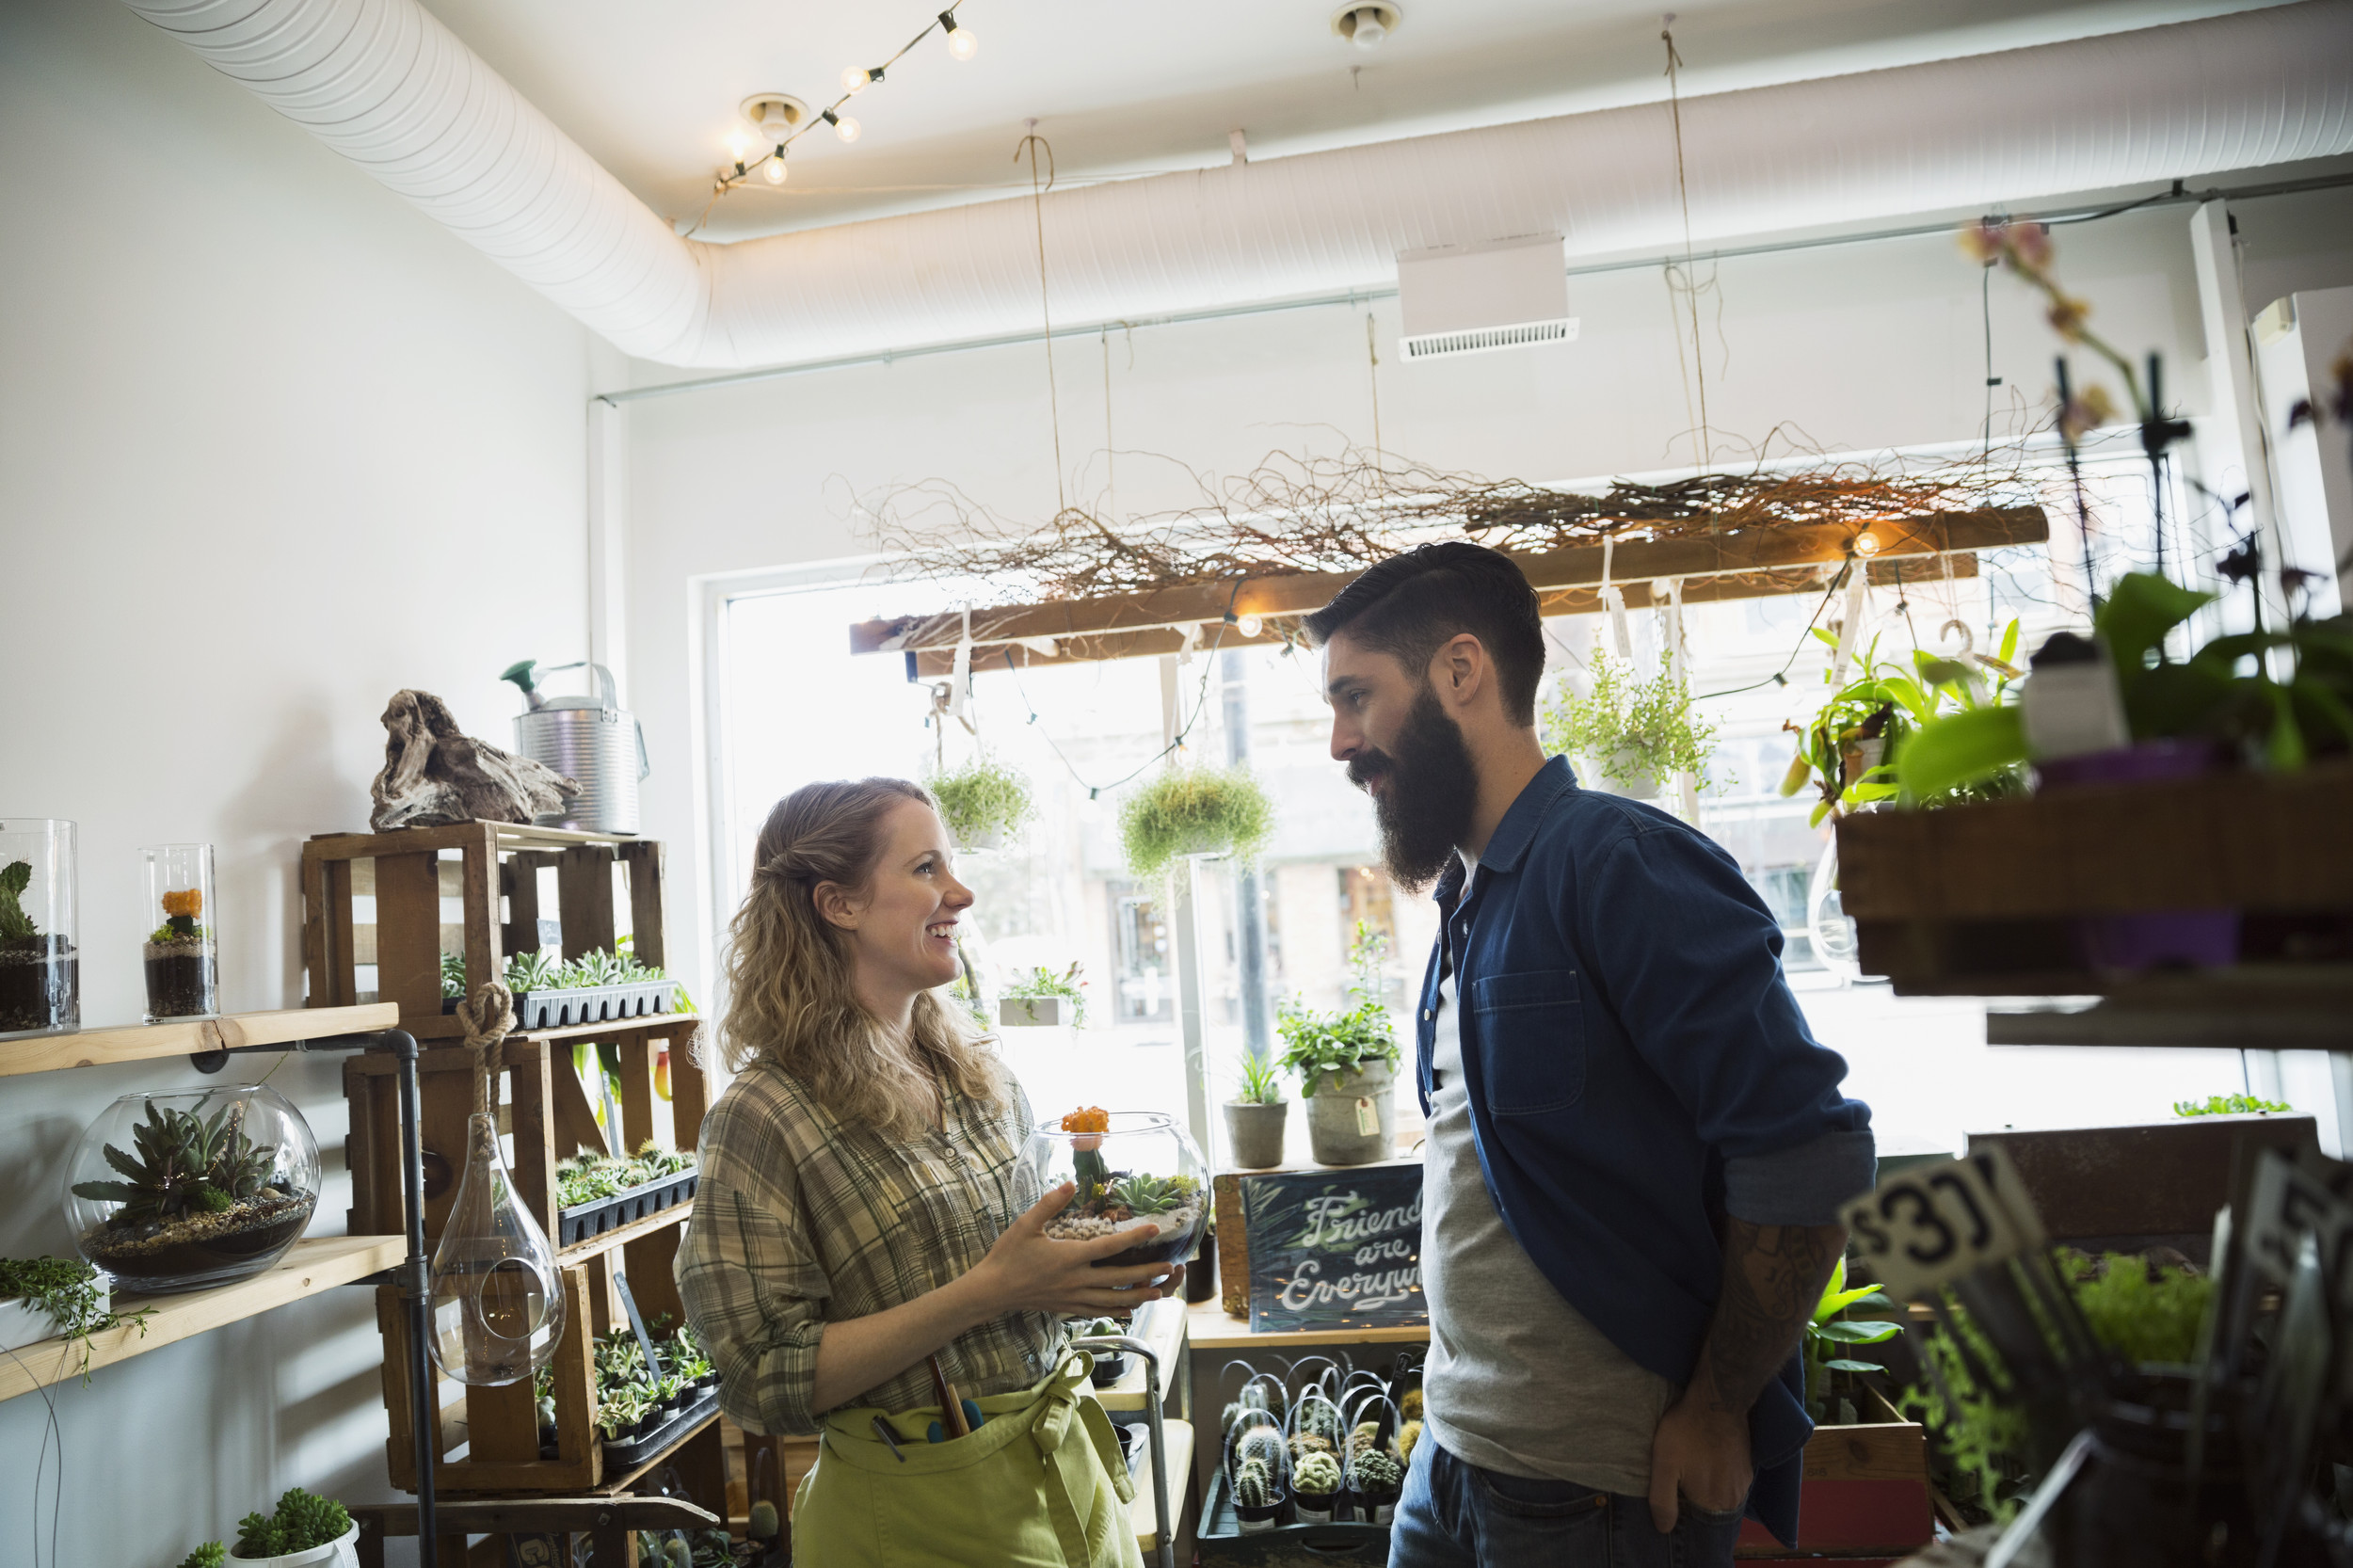 8 ways to pay attention to customers